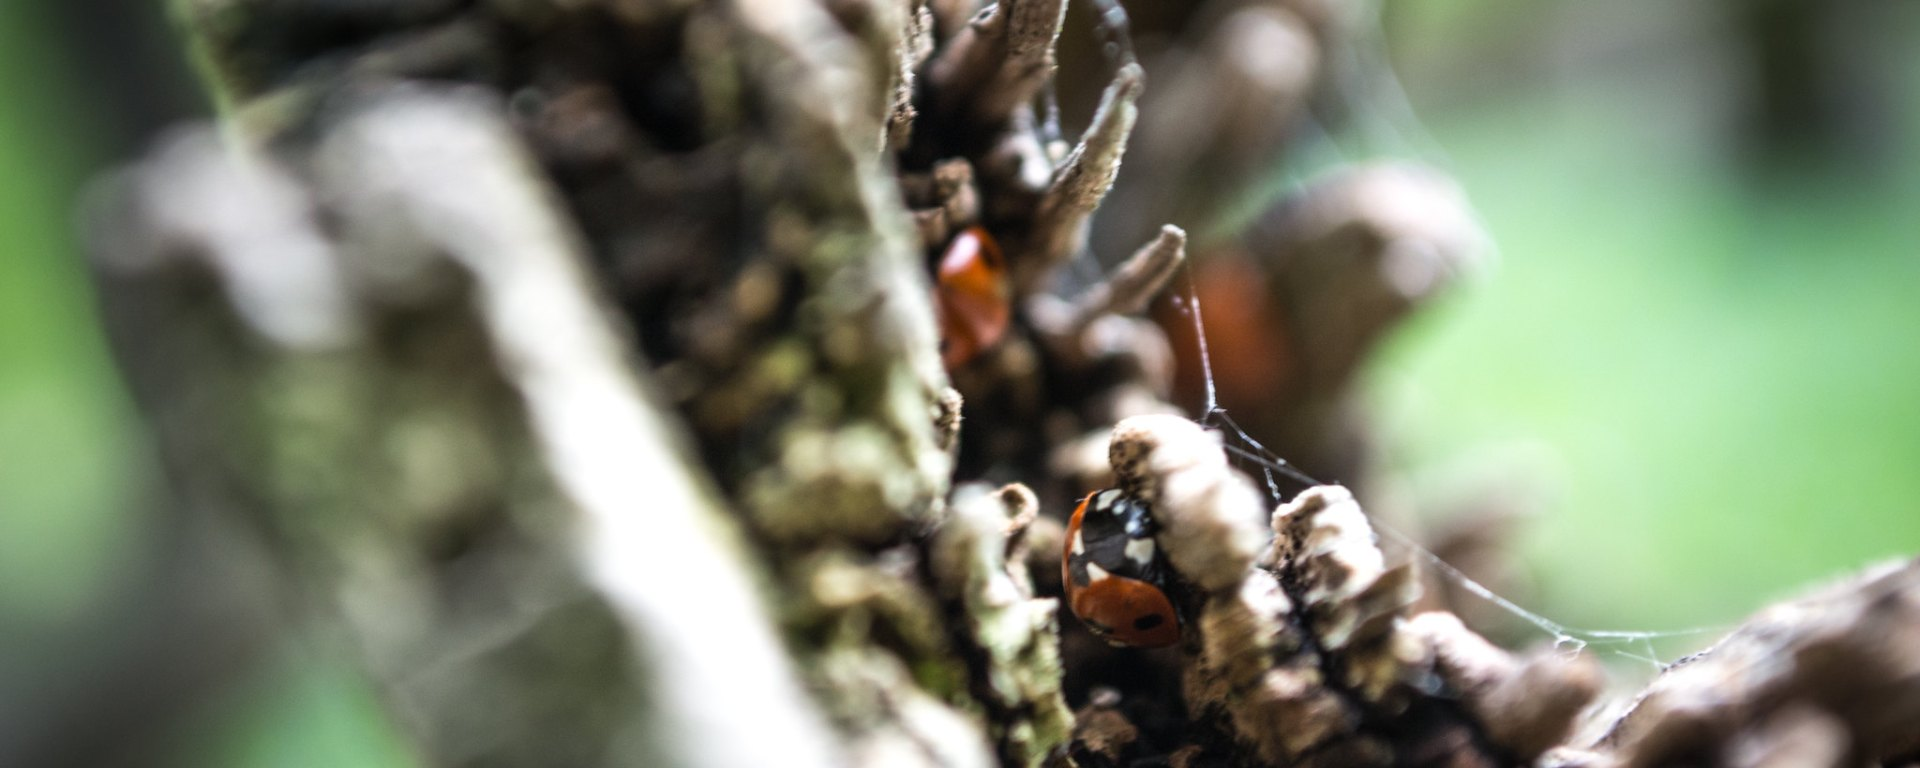 Ladybirds in the crevices of a branch